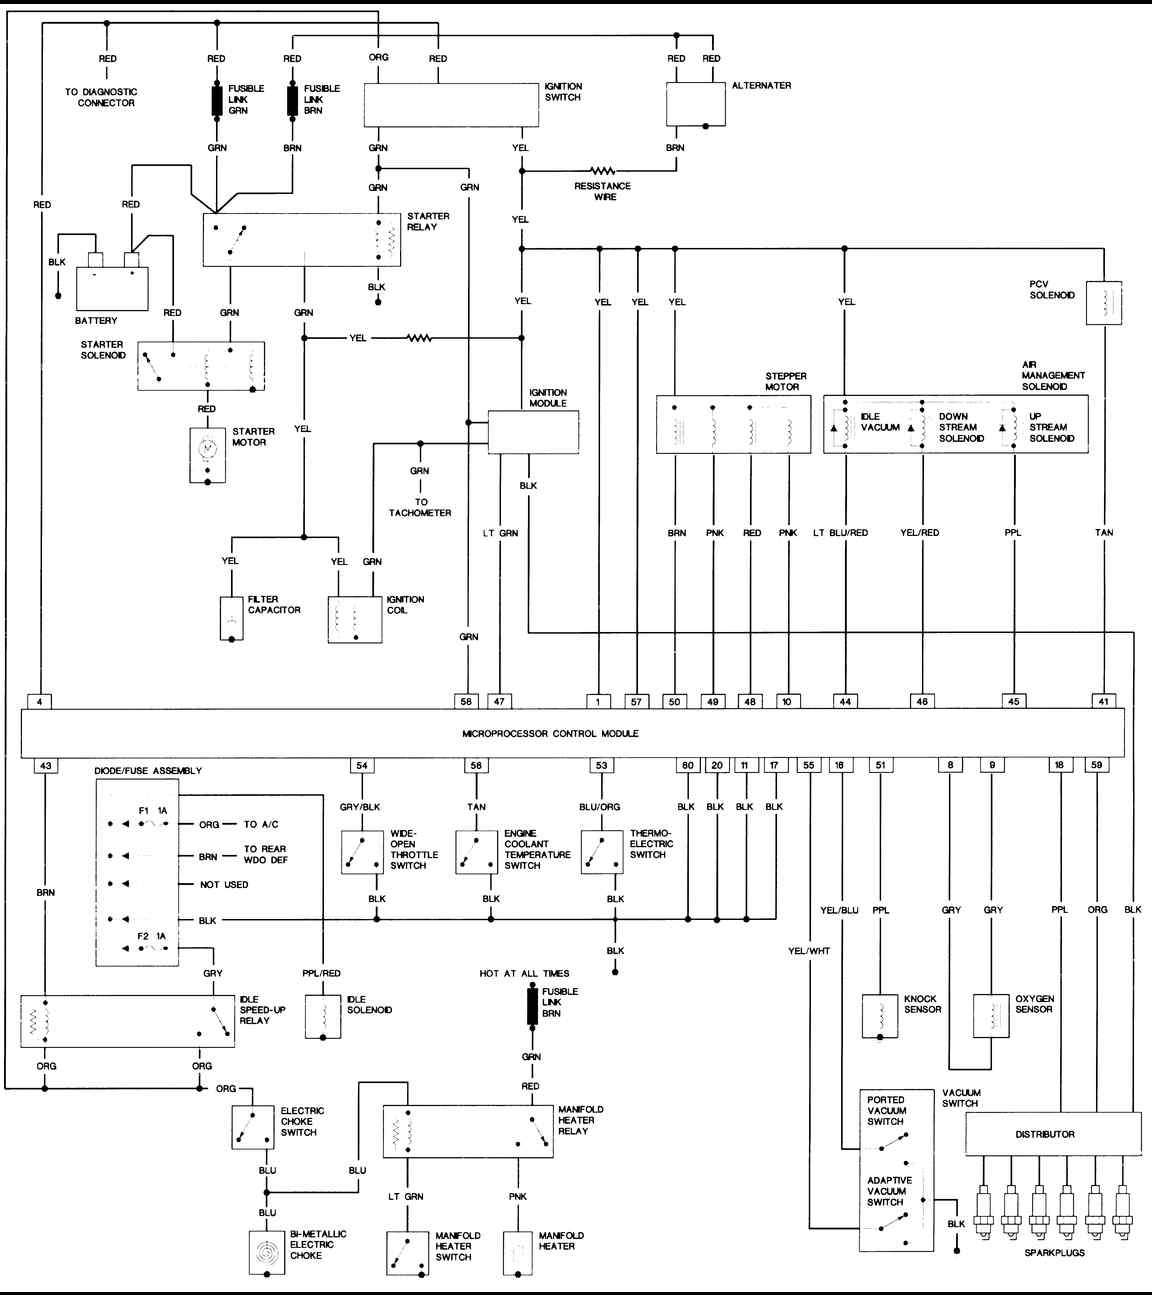 1987 jeep wrangler 4.2L engine 1987 jeep wrangler 4 2l engine(large) freeautomechanic jeep wrangler wiring diagram free at gsmportal.co